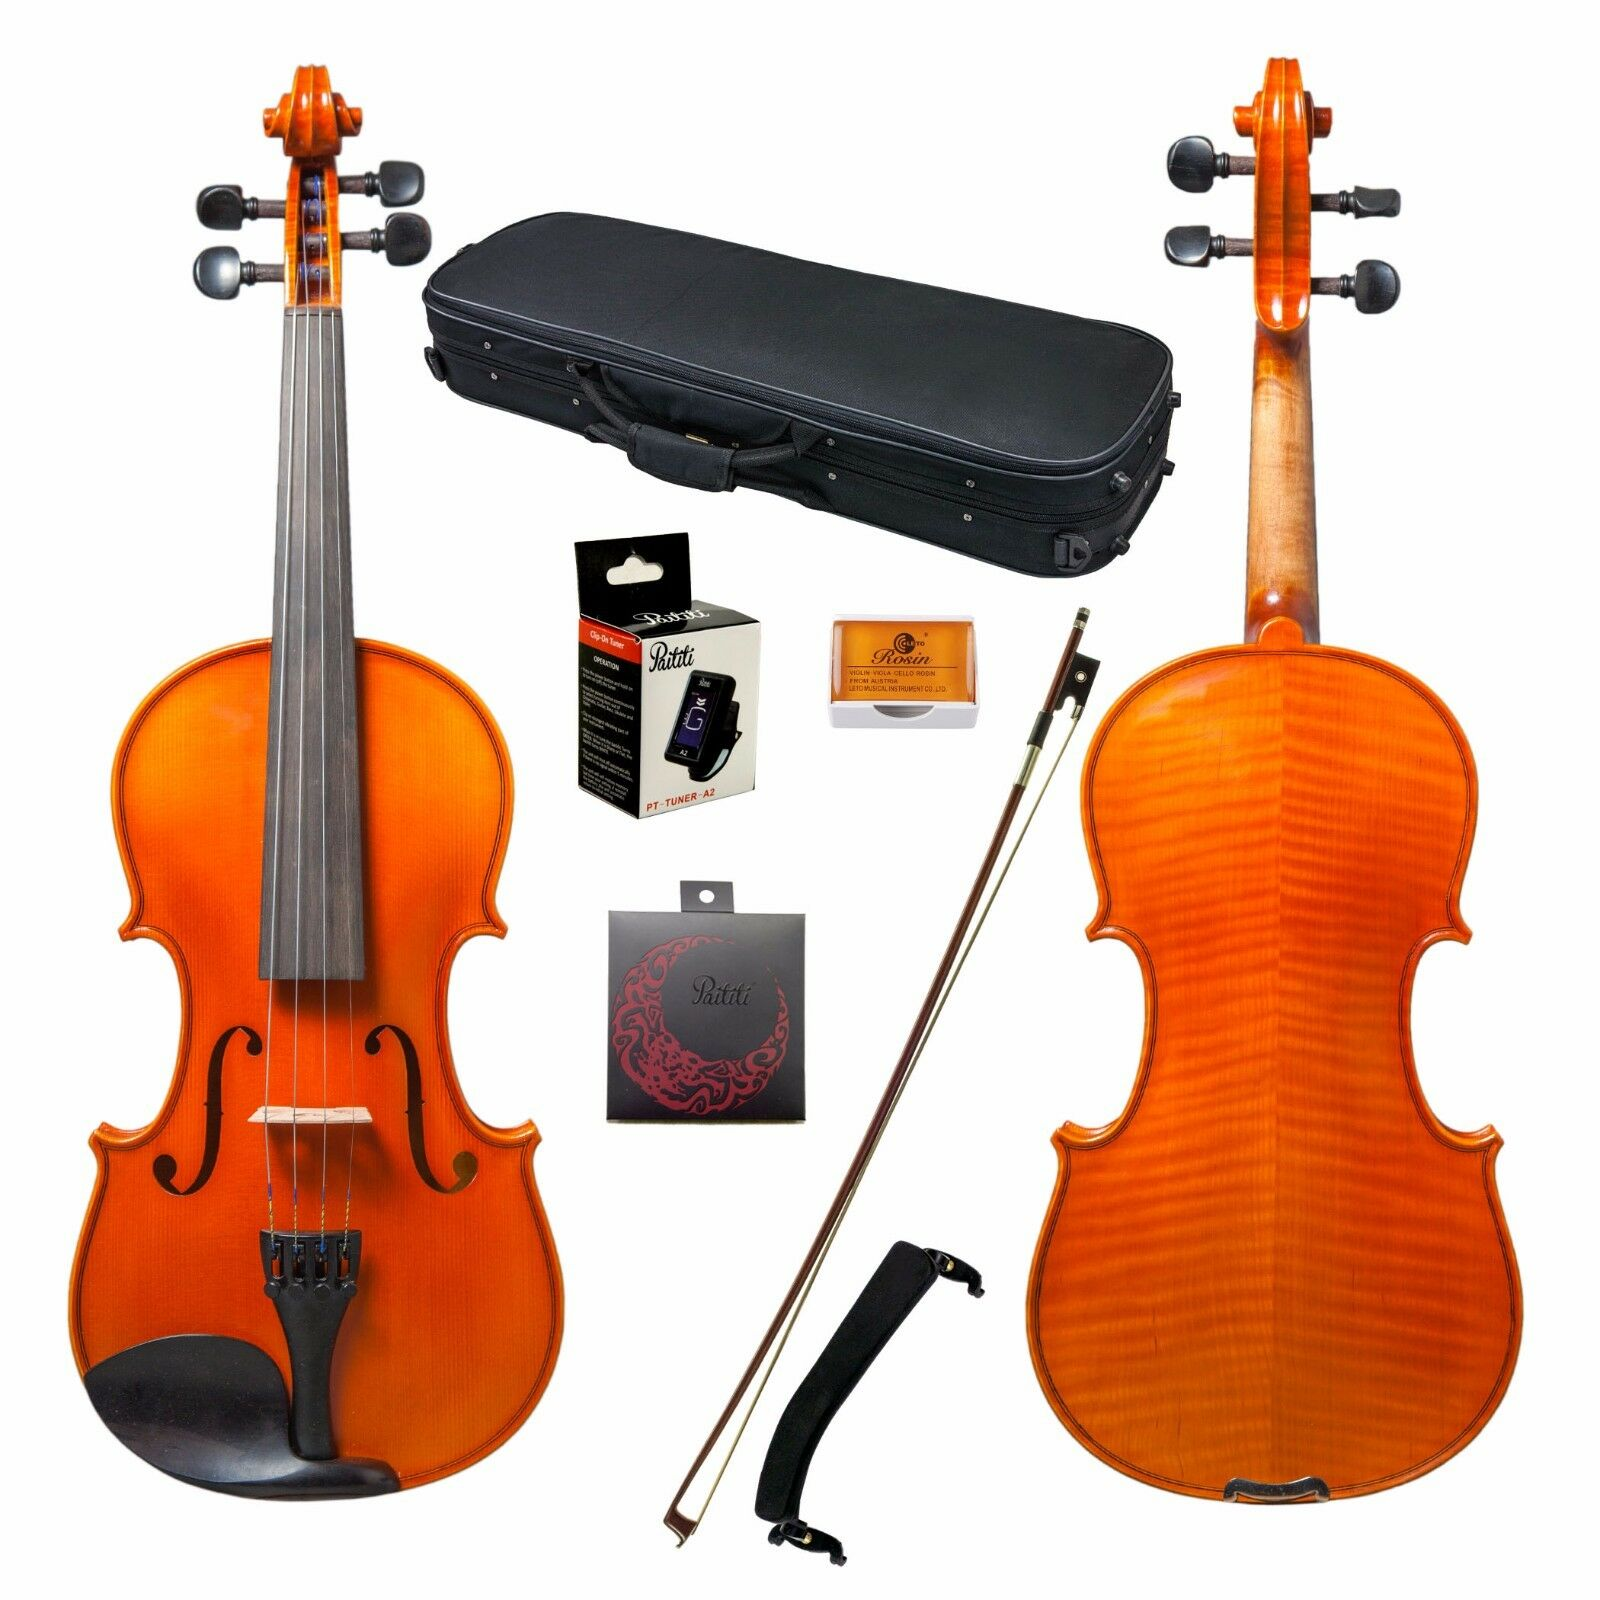 Paititi 1 2 Size Intermediate Level Plus Violin with Case, Bow and More